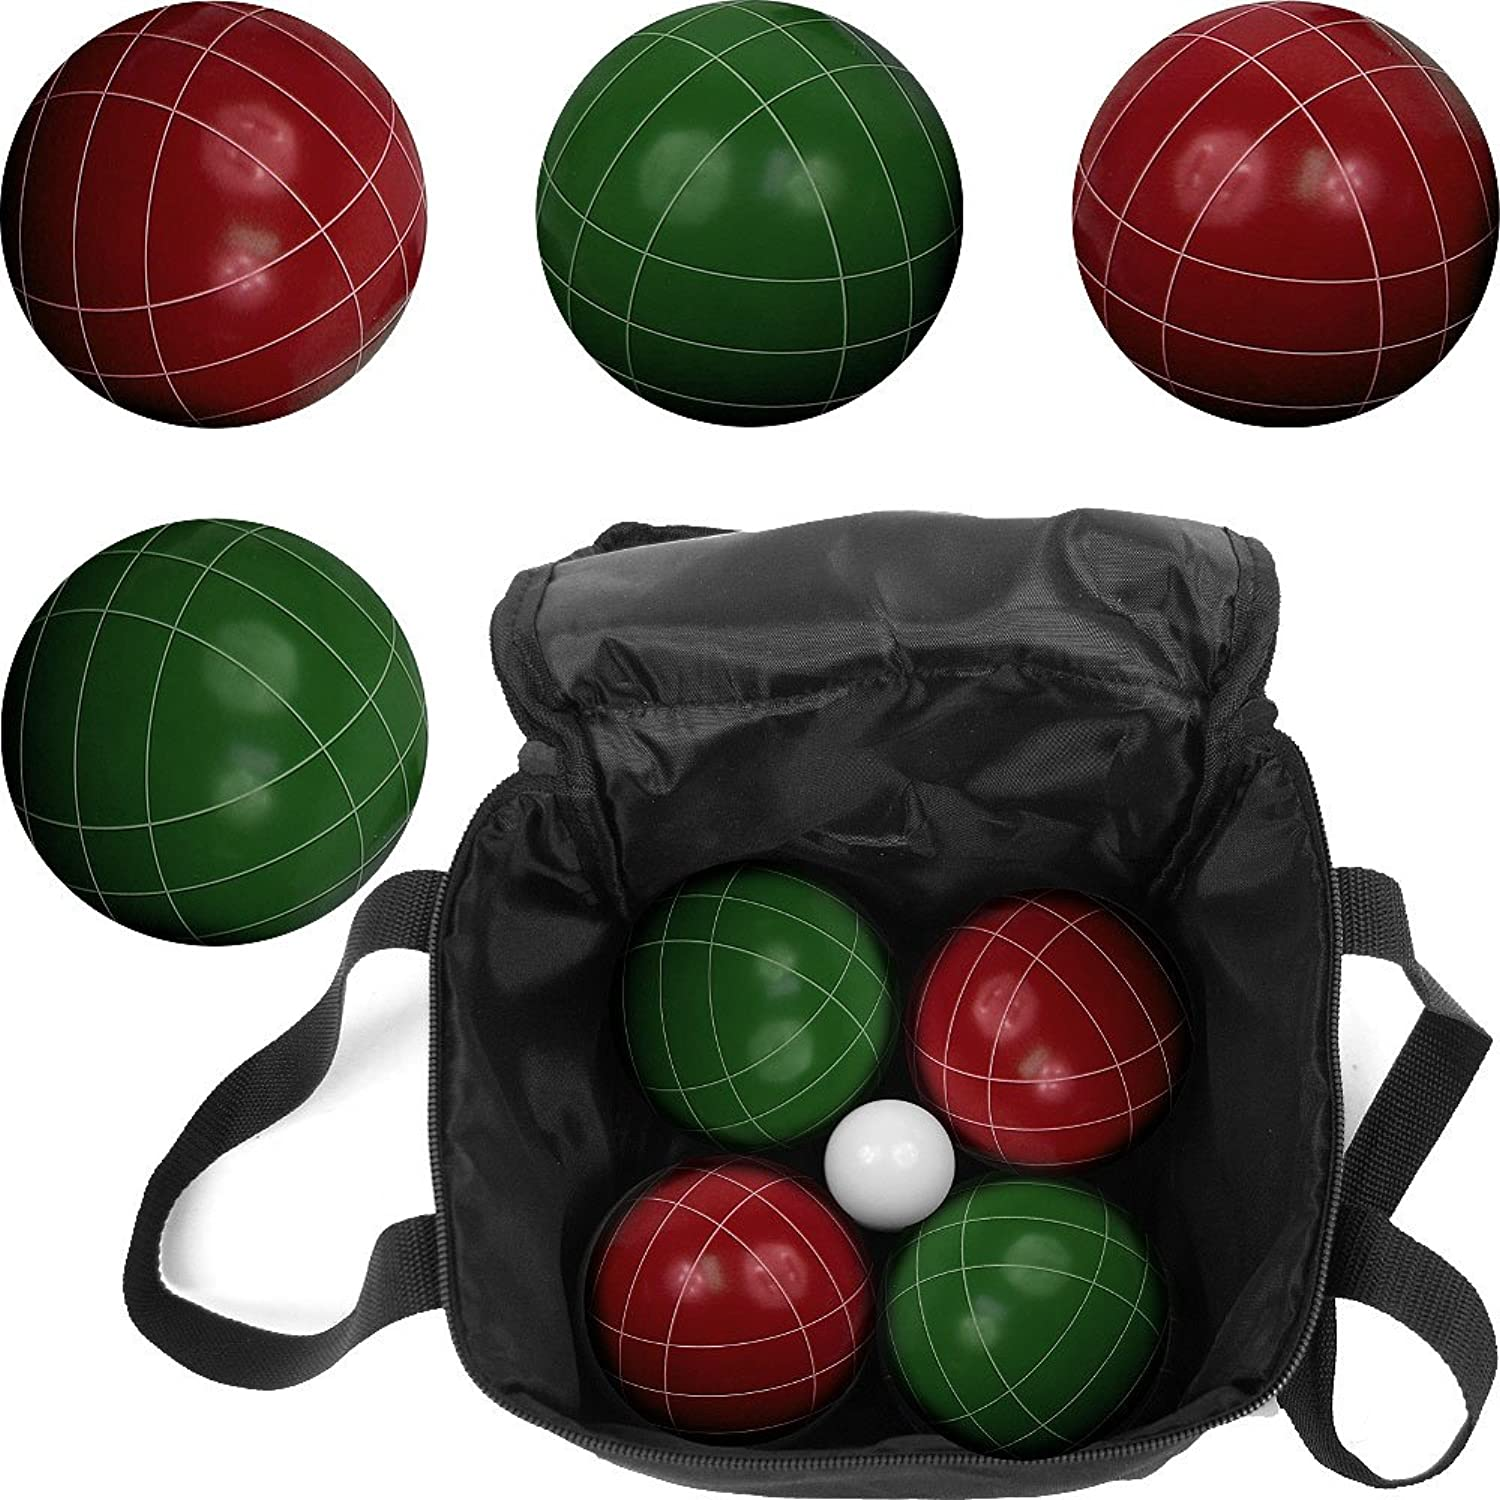 Bocce Ball Set by Hey  Play  Various Licences, Racks Futons, Green Red Black